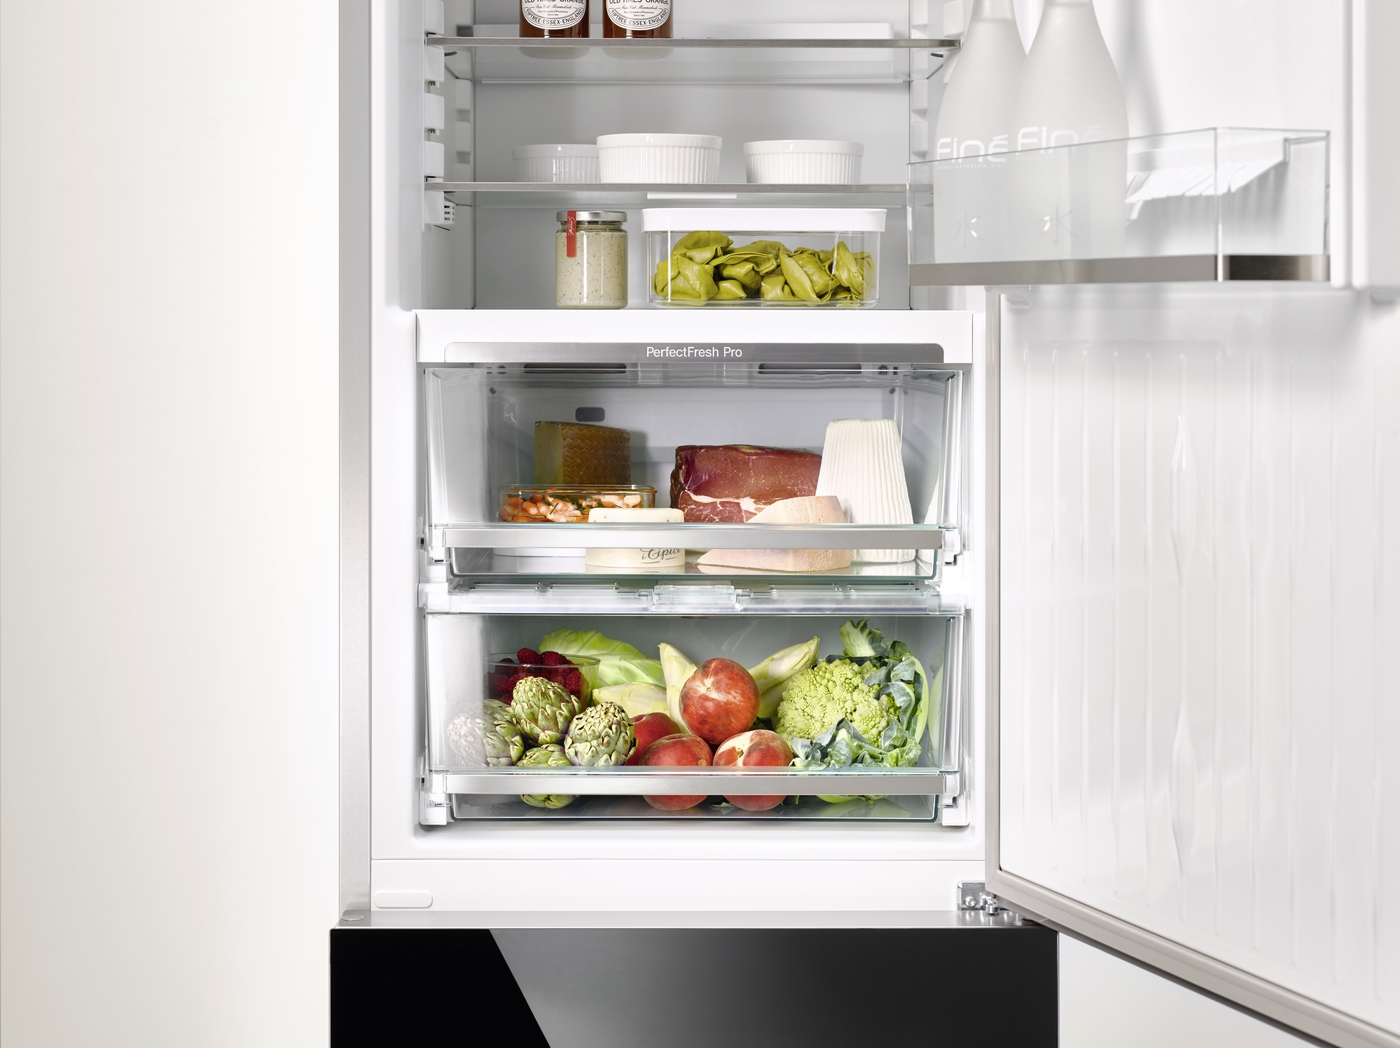 More storage – more freedom PerfectFreshPro is our best freshness storage system. In the automatically controlled temperature range from 0°C to +3°C, meat, fish and many dairy products have a shelf life that is up to 3x longer. Fruit and vegetables stay fresh up to 5x longer thanks to the optimised moisture regulation in the drawer.